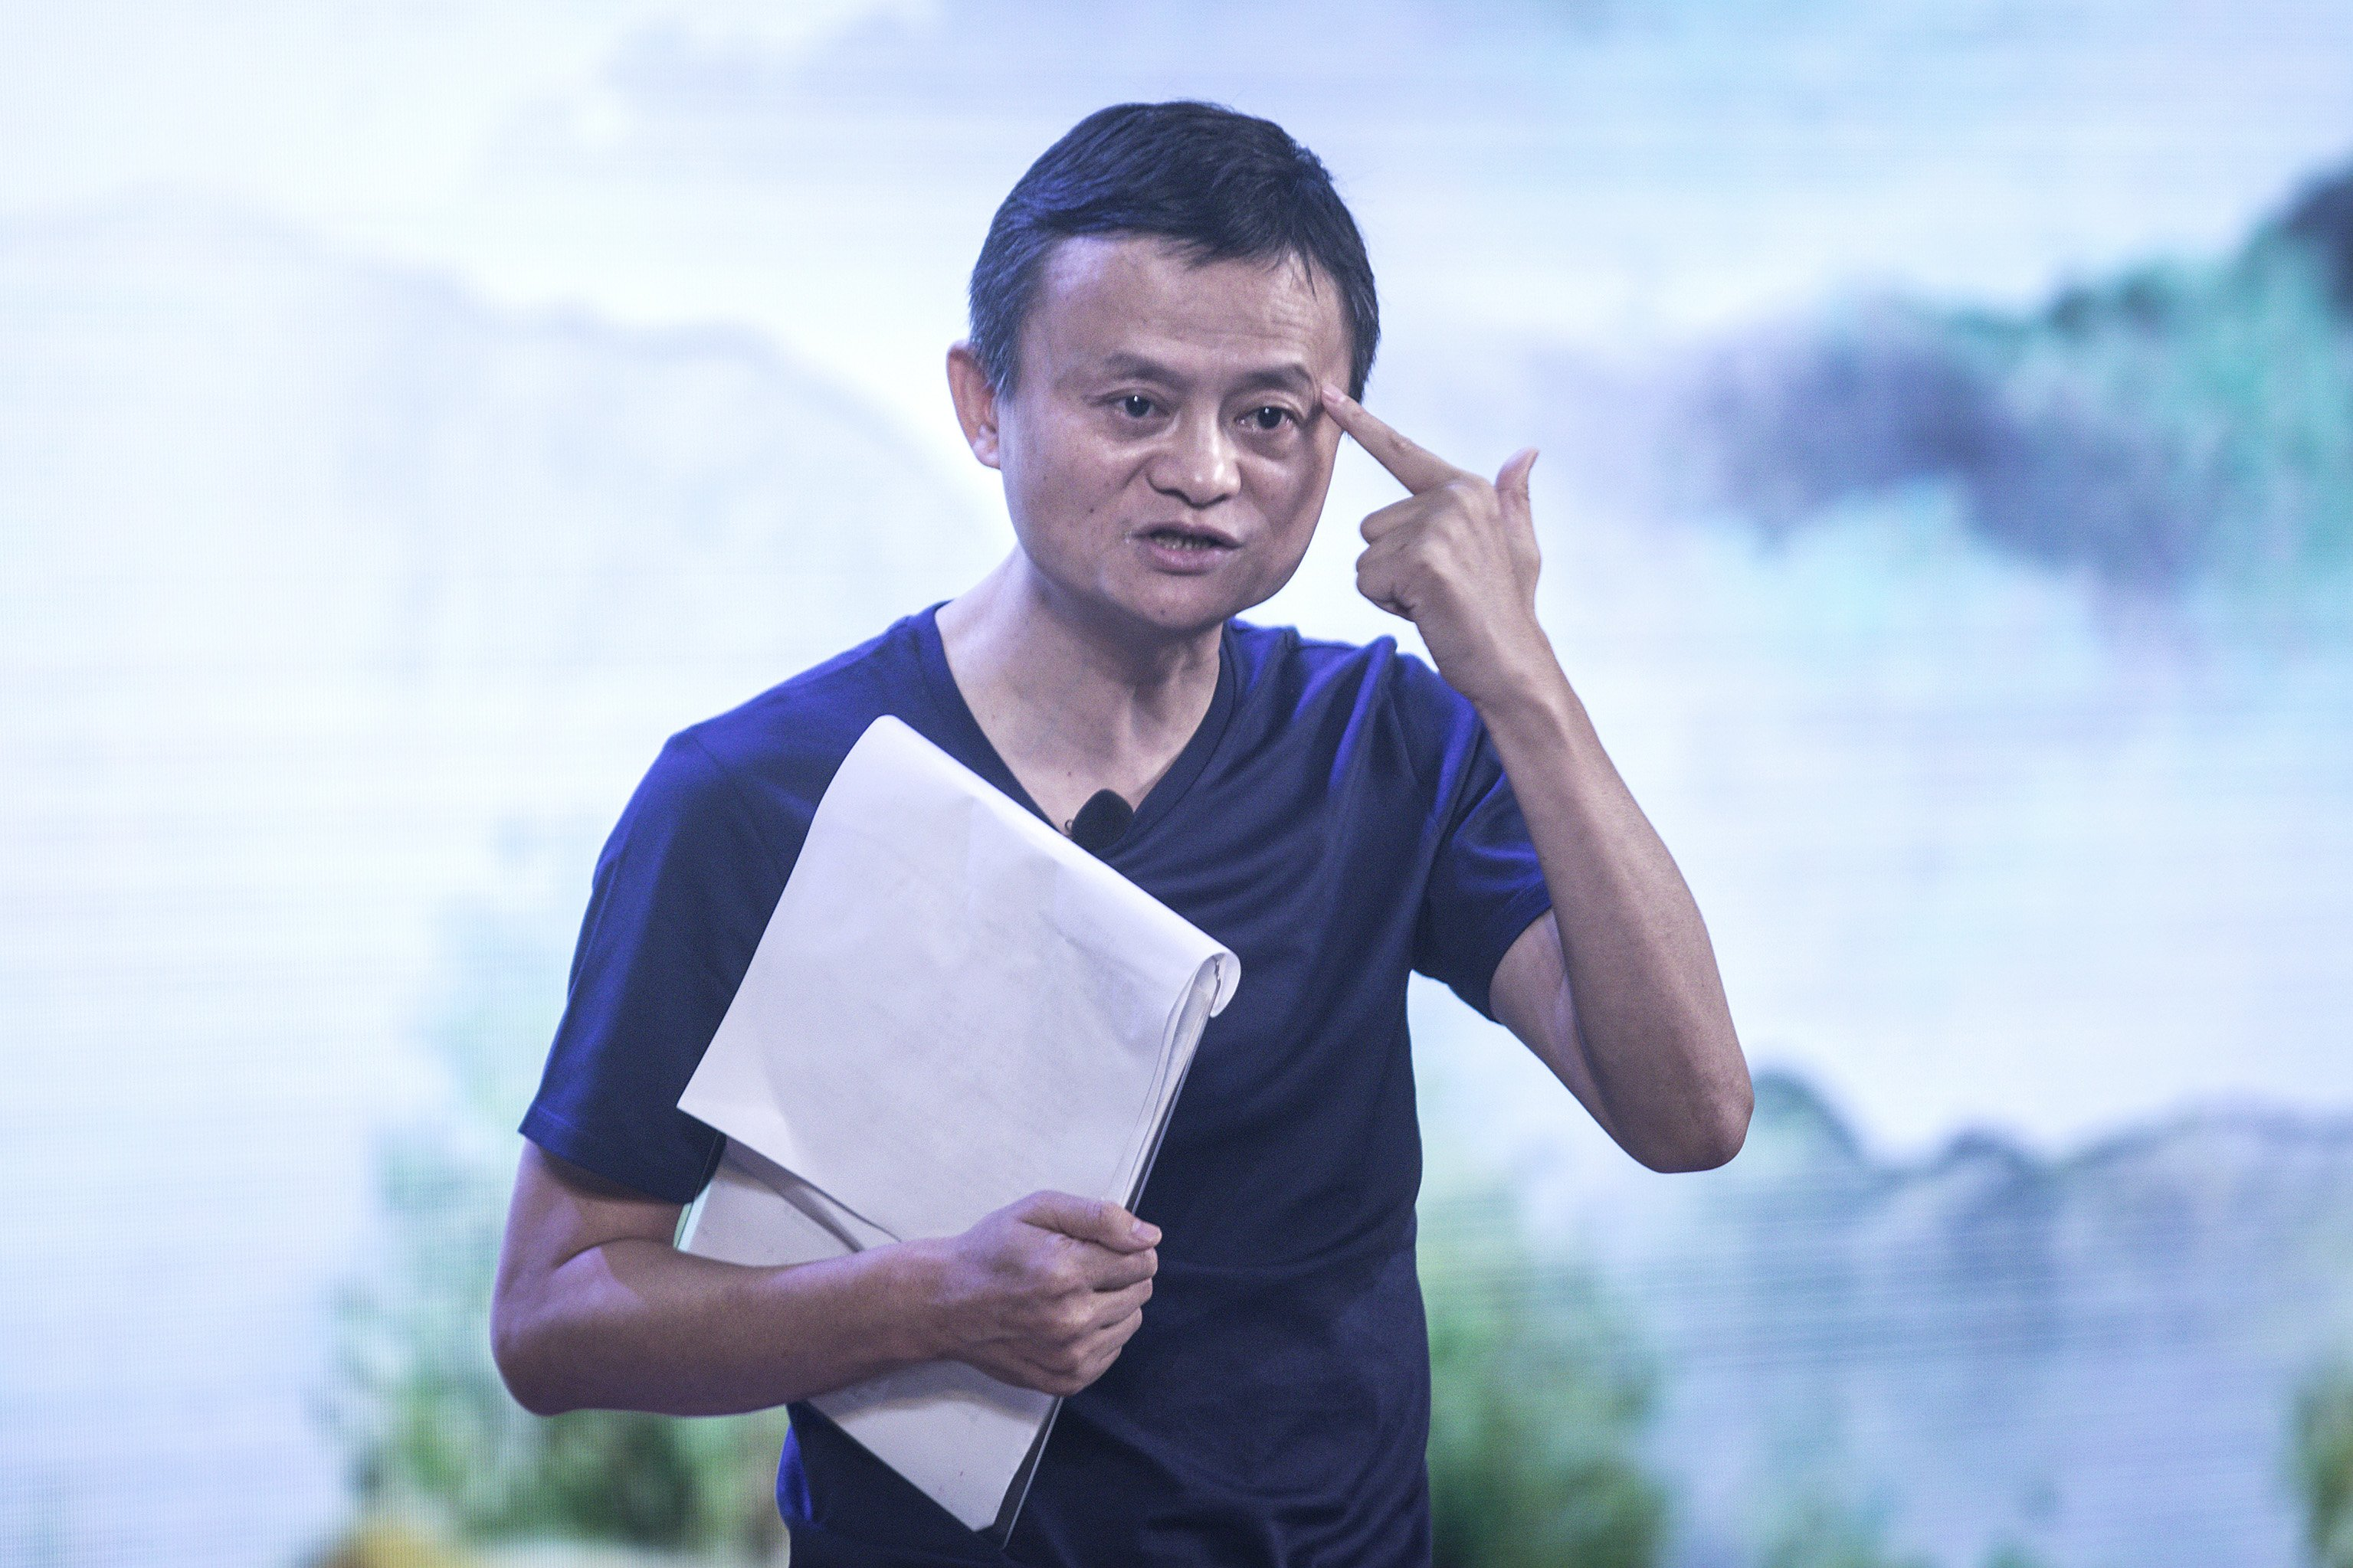 Jack Ma giving a lecture at the gives a speech at the Ò Rural Education Lunch meeting for the Jack Ma Foundation in Sanya, China | Photo: Getty Images